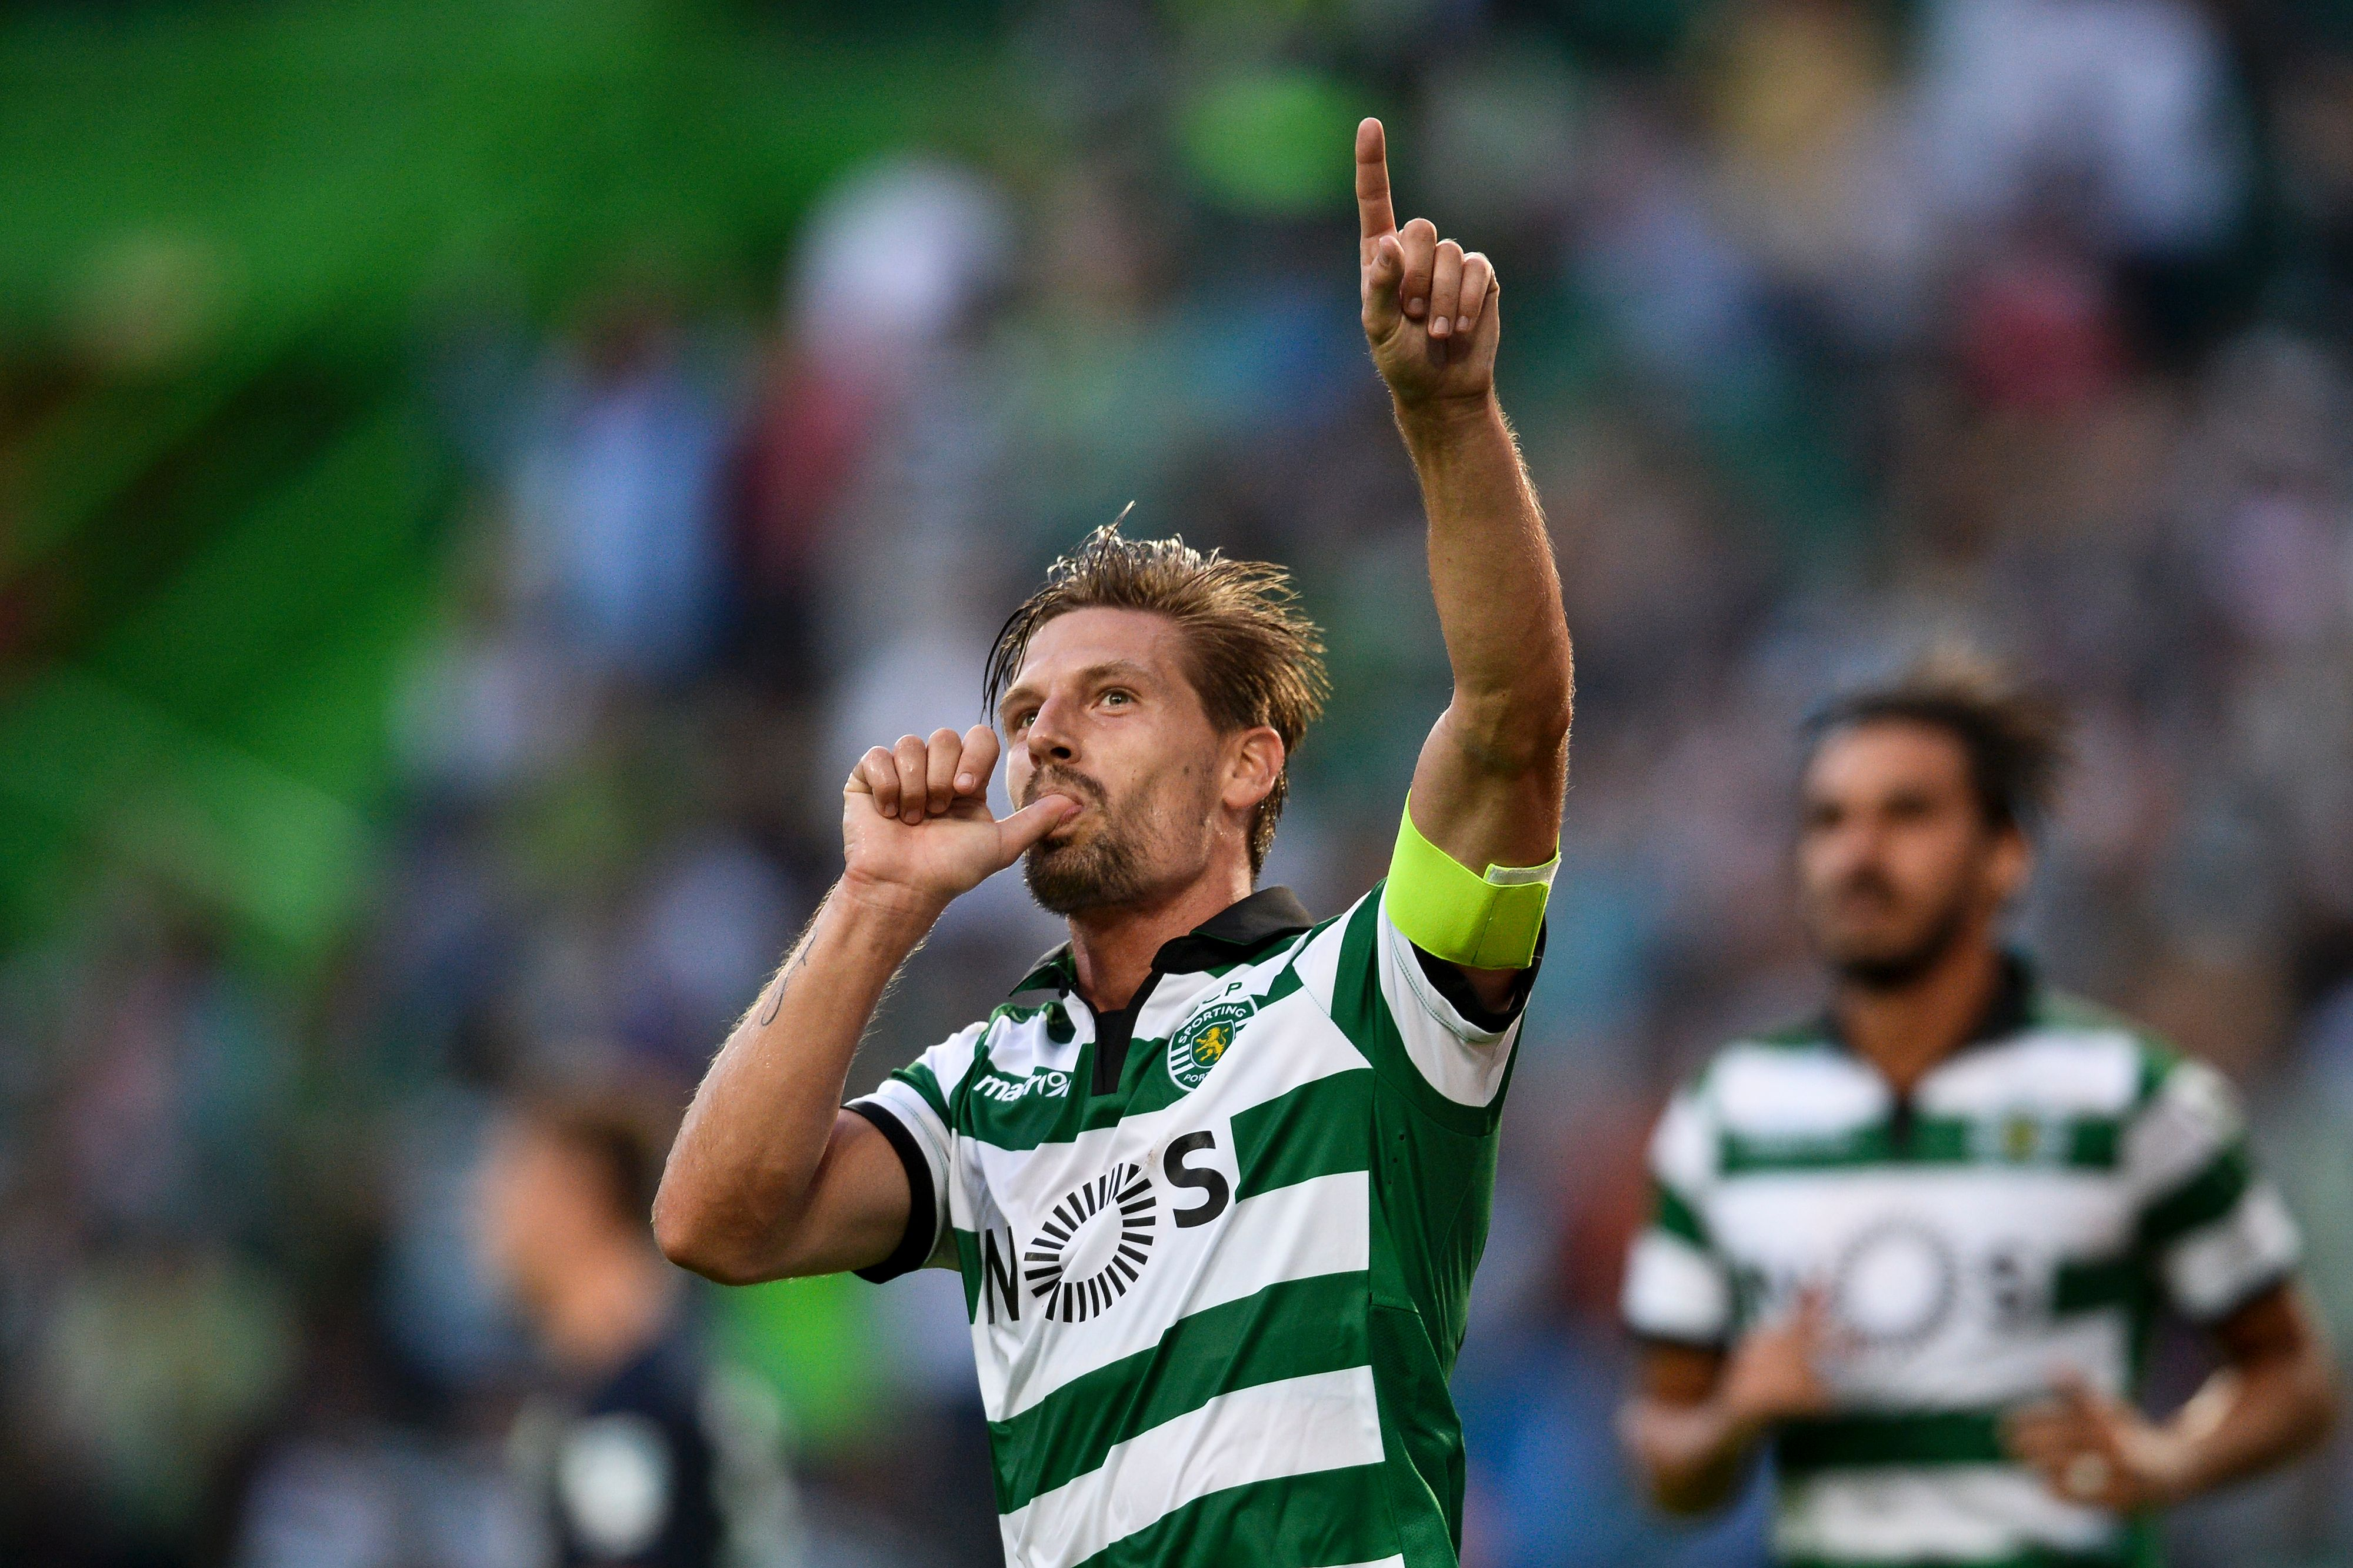 Sporting's midfielder Adrien Silva celebrates after scoring against VFL Wolfsburg during the Violinos Cup football match between Sporting CP and VFL Wolfsburg at Alvalade stadium in Lisbon on July 30, 2016. / AFP / PATRICIA DE MELO MOREIRA (Photo credit should read PATRICIA DE MELO MOREIRA/AFP/Getty Images)